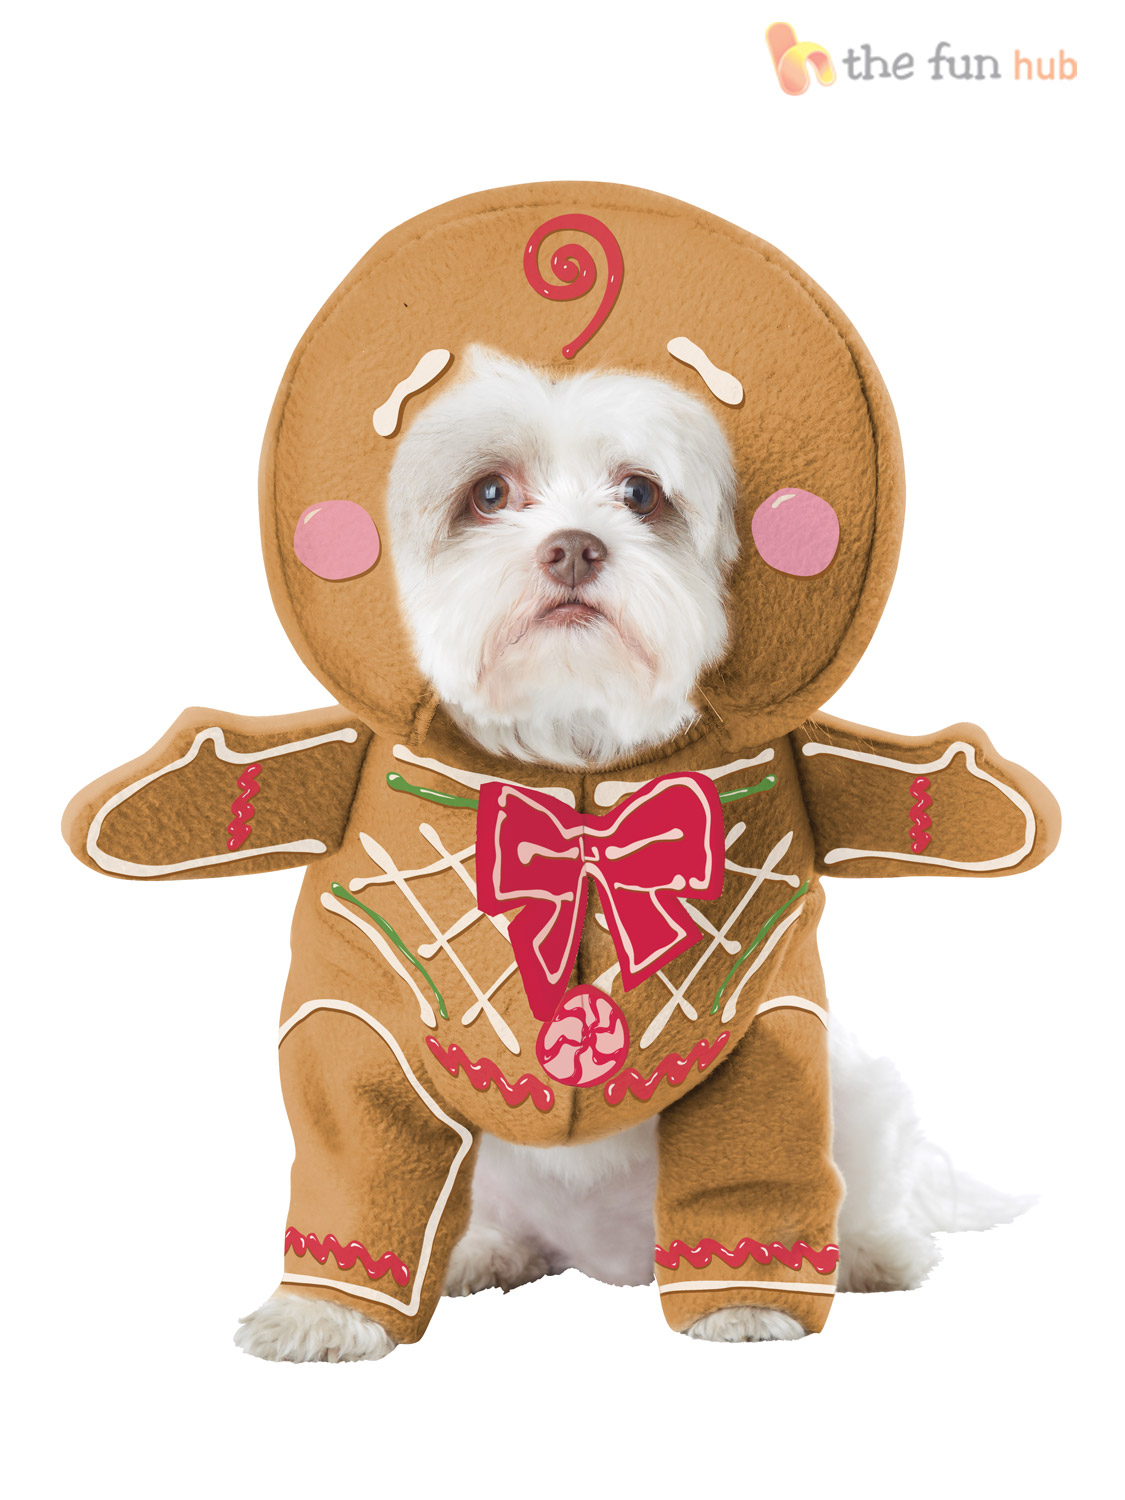 Christmas Pet Costumes.Details About Dog Christmas Fancy Dress Costumes Santa Elf Funny Pet Cat Outfit Clothes Gift